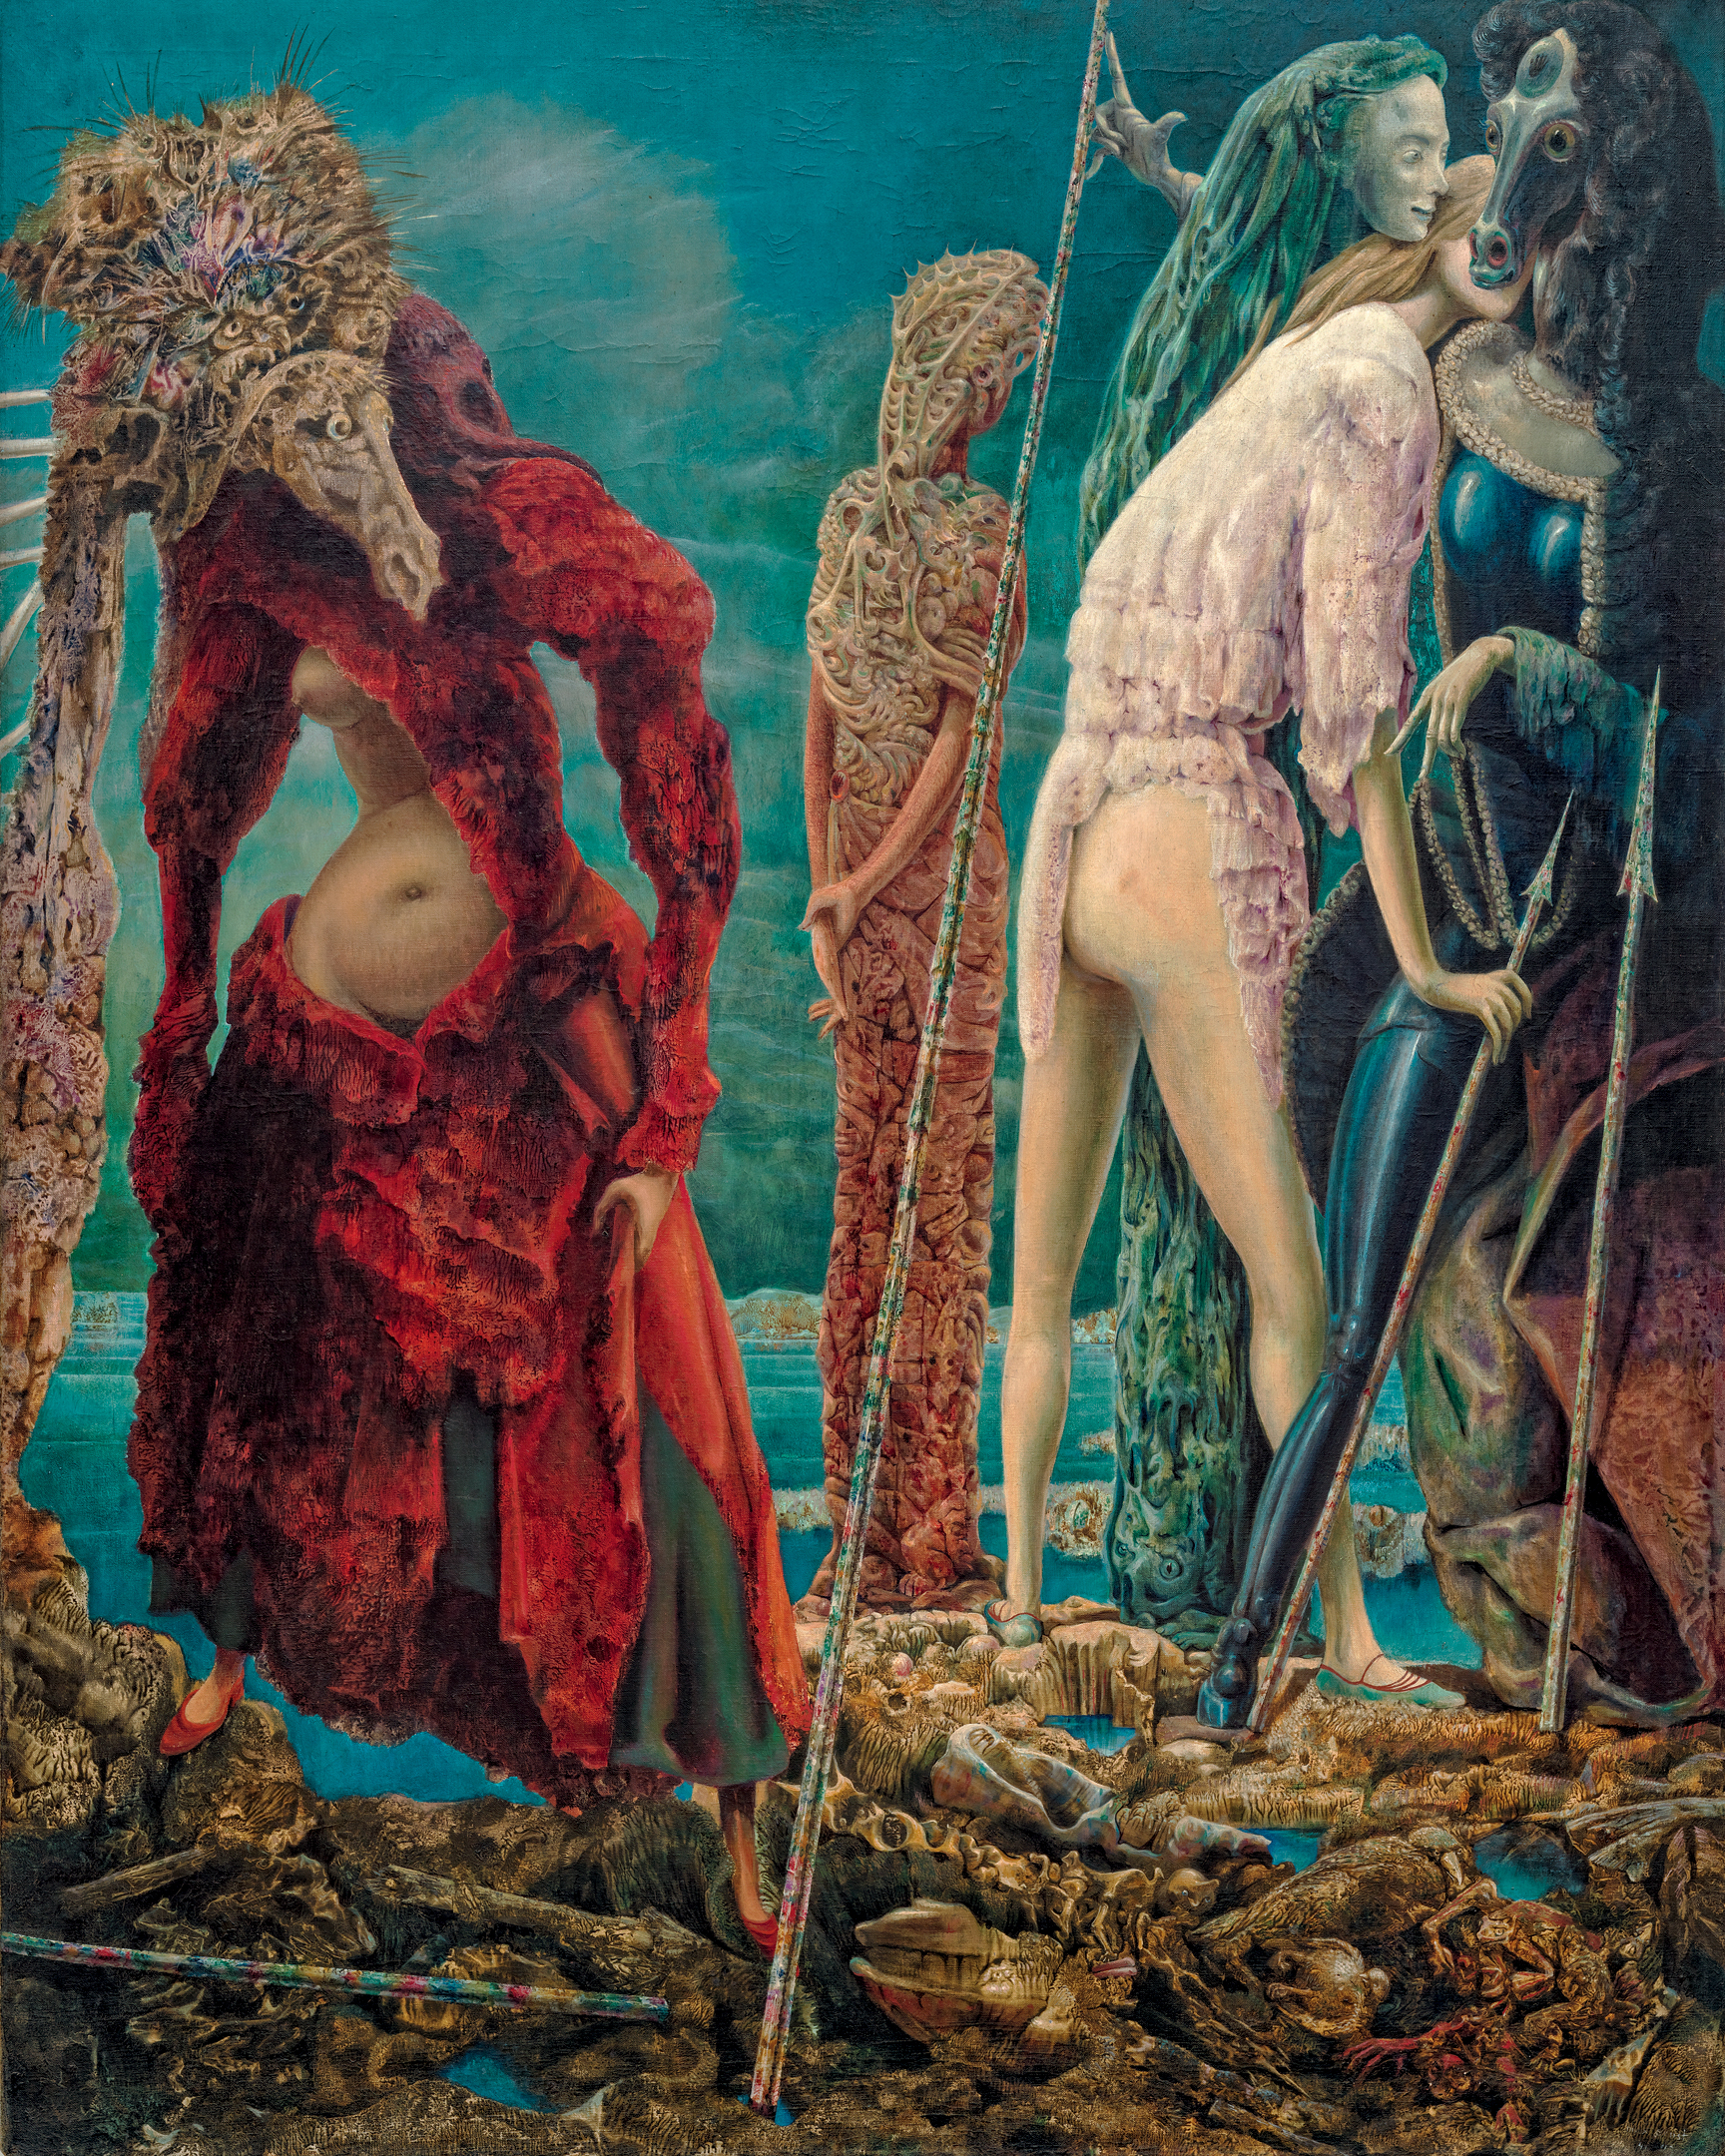 The Antipope (1941–42), by Max Ernst. Oil on canvas, 160.8 x 127.1 cm. Solomon R. Guggenheim Foundation, Peggy Guggenheim Collection, Venice, 1976. © 2017 Artists Rights Society (ARS), New York/ADAGP, Paris.